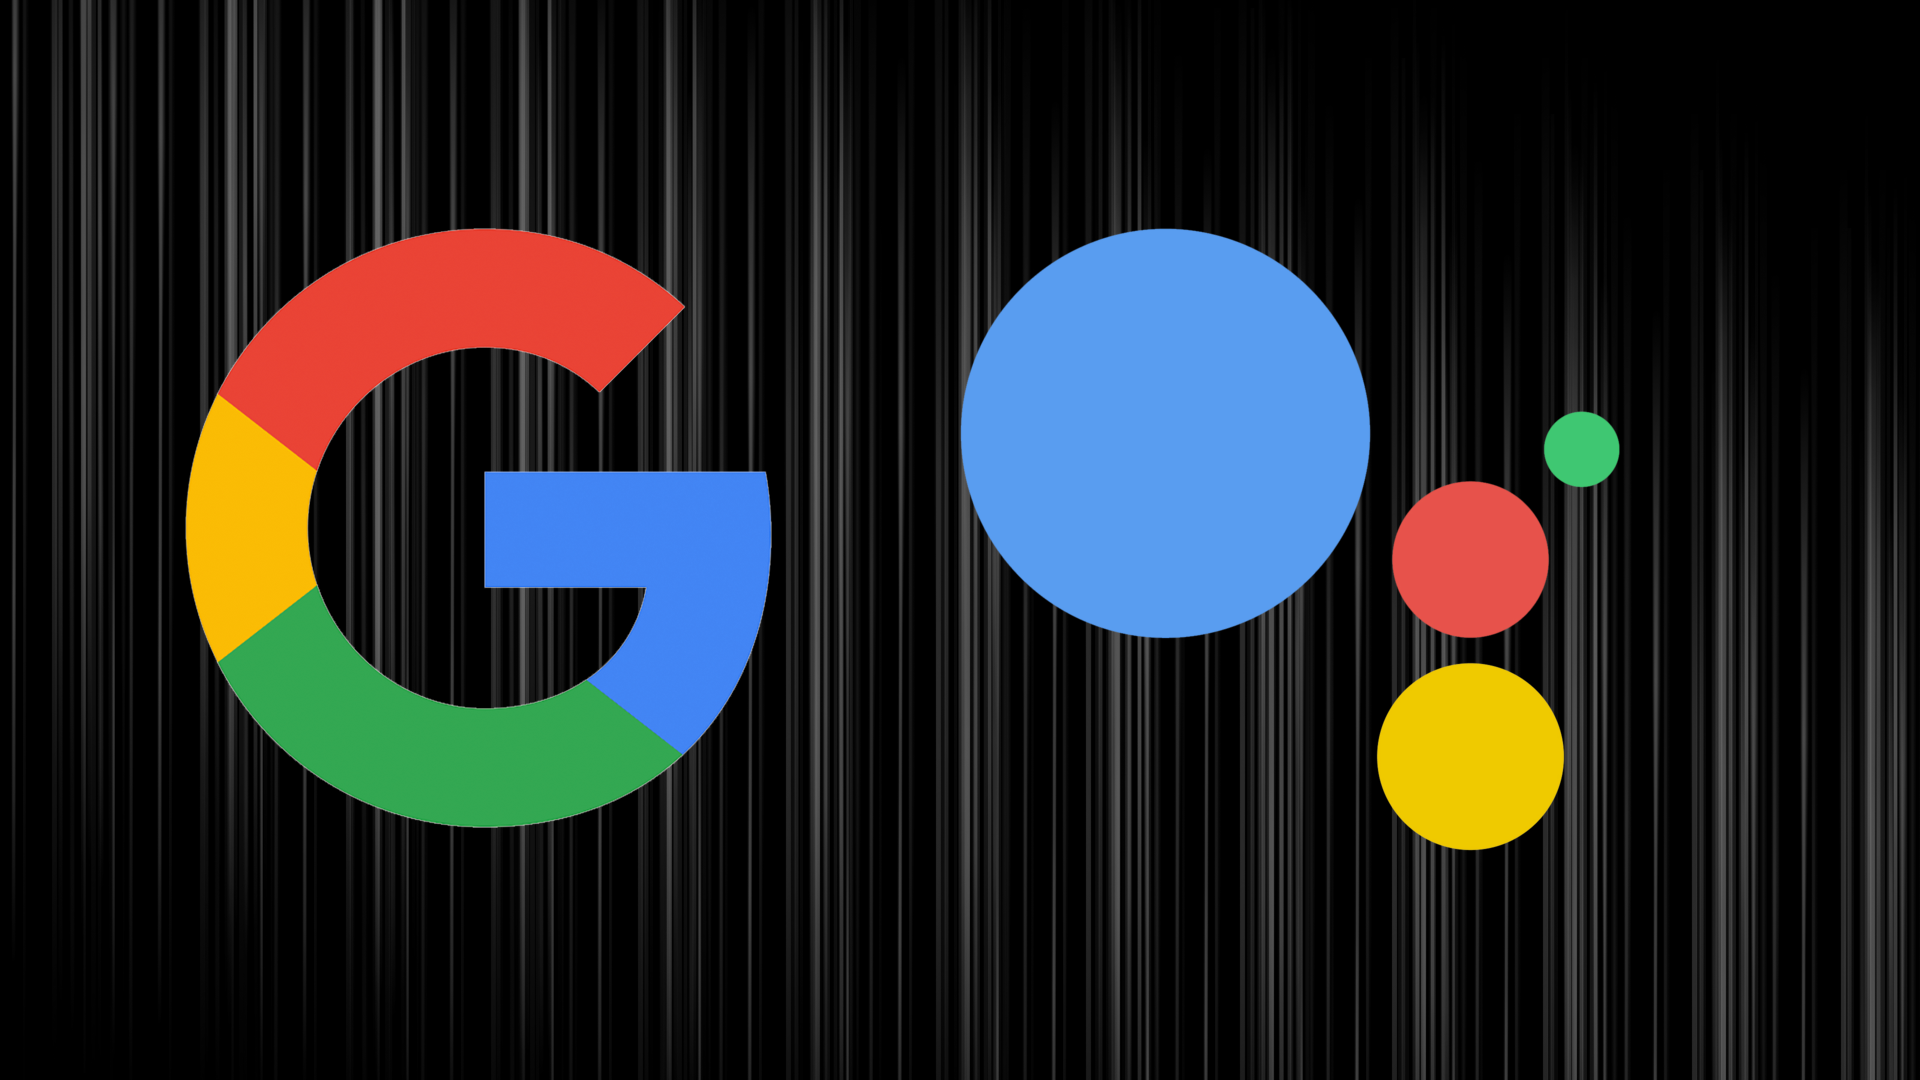 Your guide to using Google Assistant and the Google search app on 1920x1080